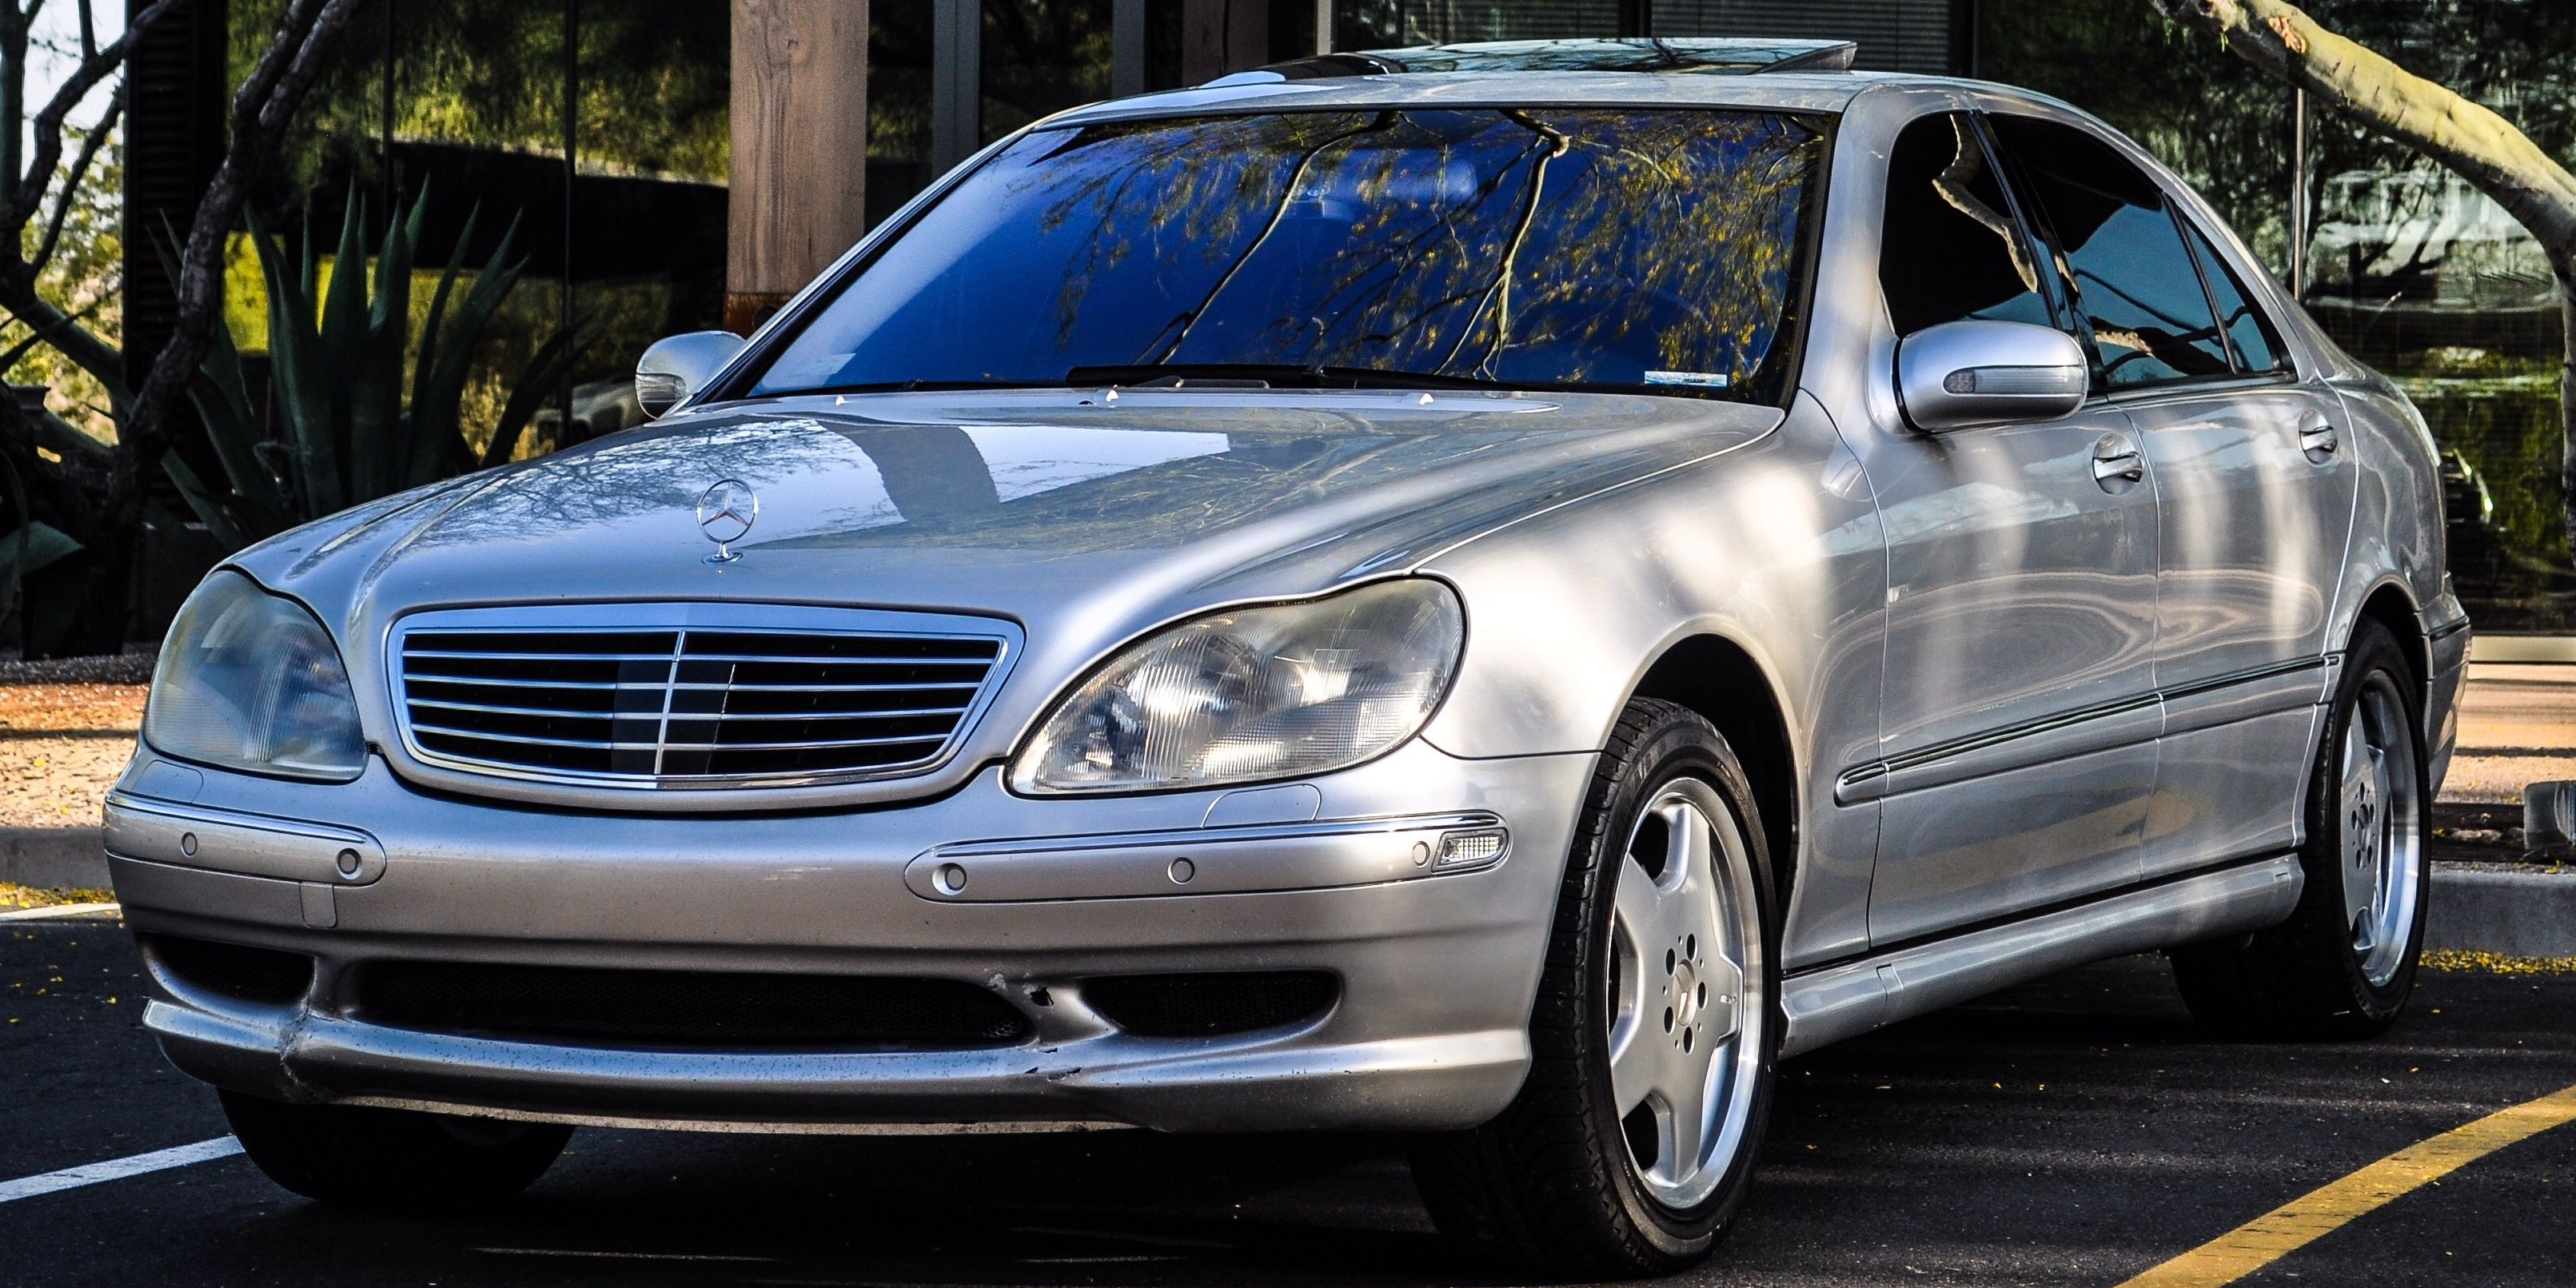 10 Most Powerful Sports Cars Of The 2000s You Can Buy For $10,000